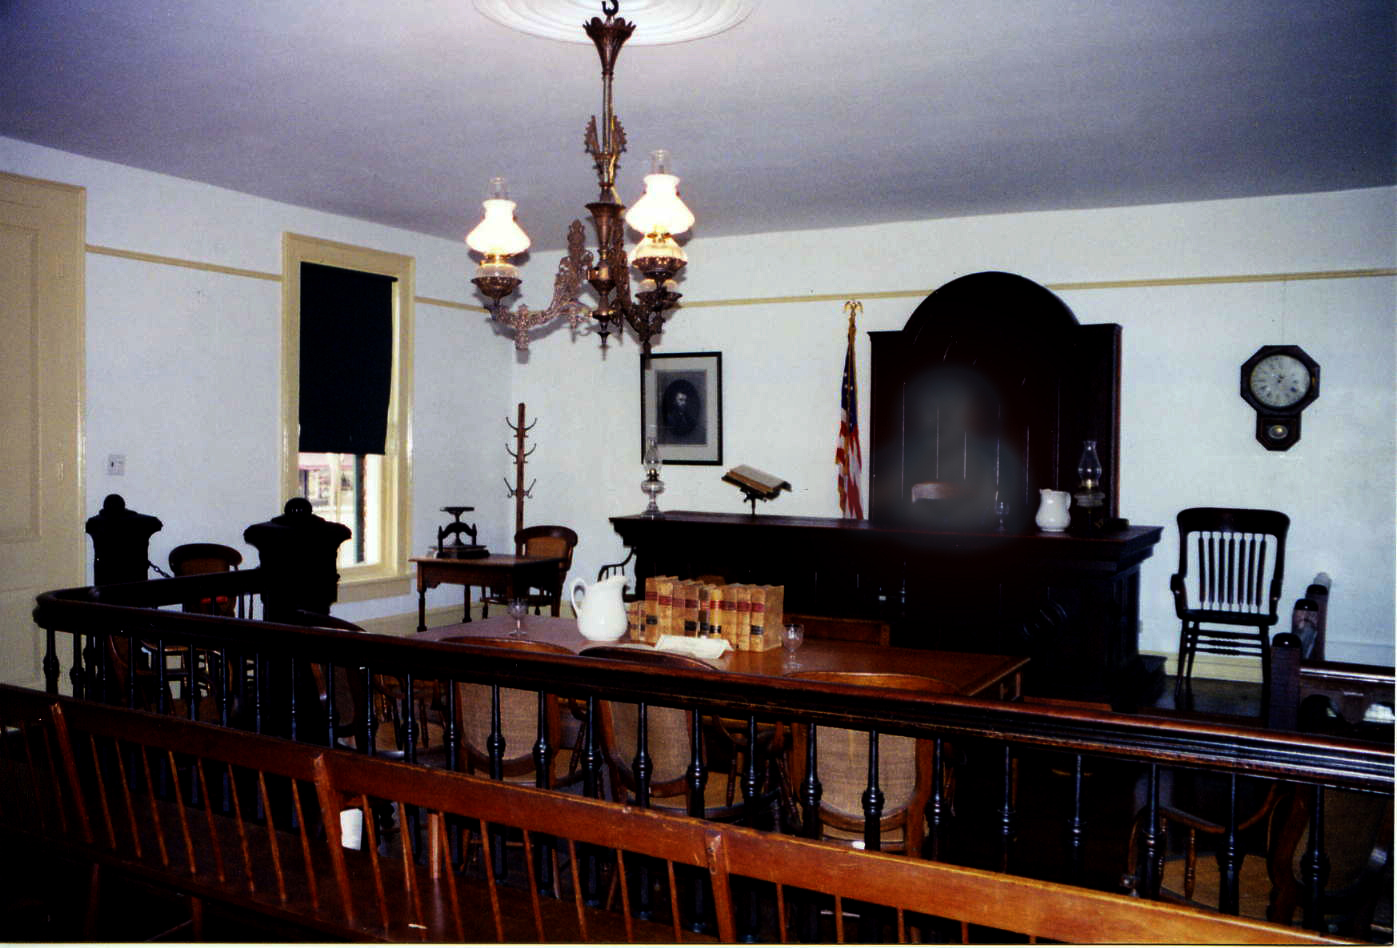 whaley house court ghost spirit apparition haunted